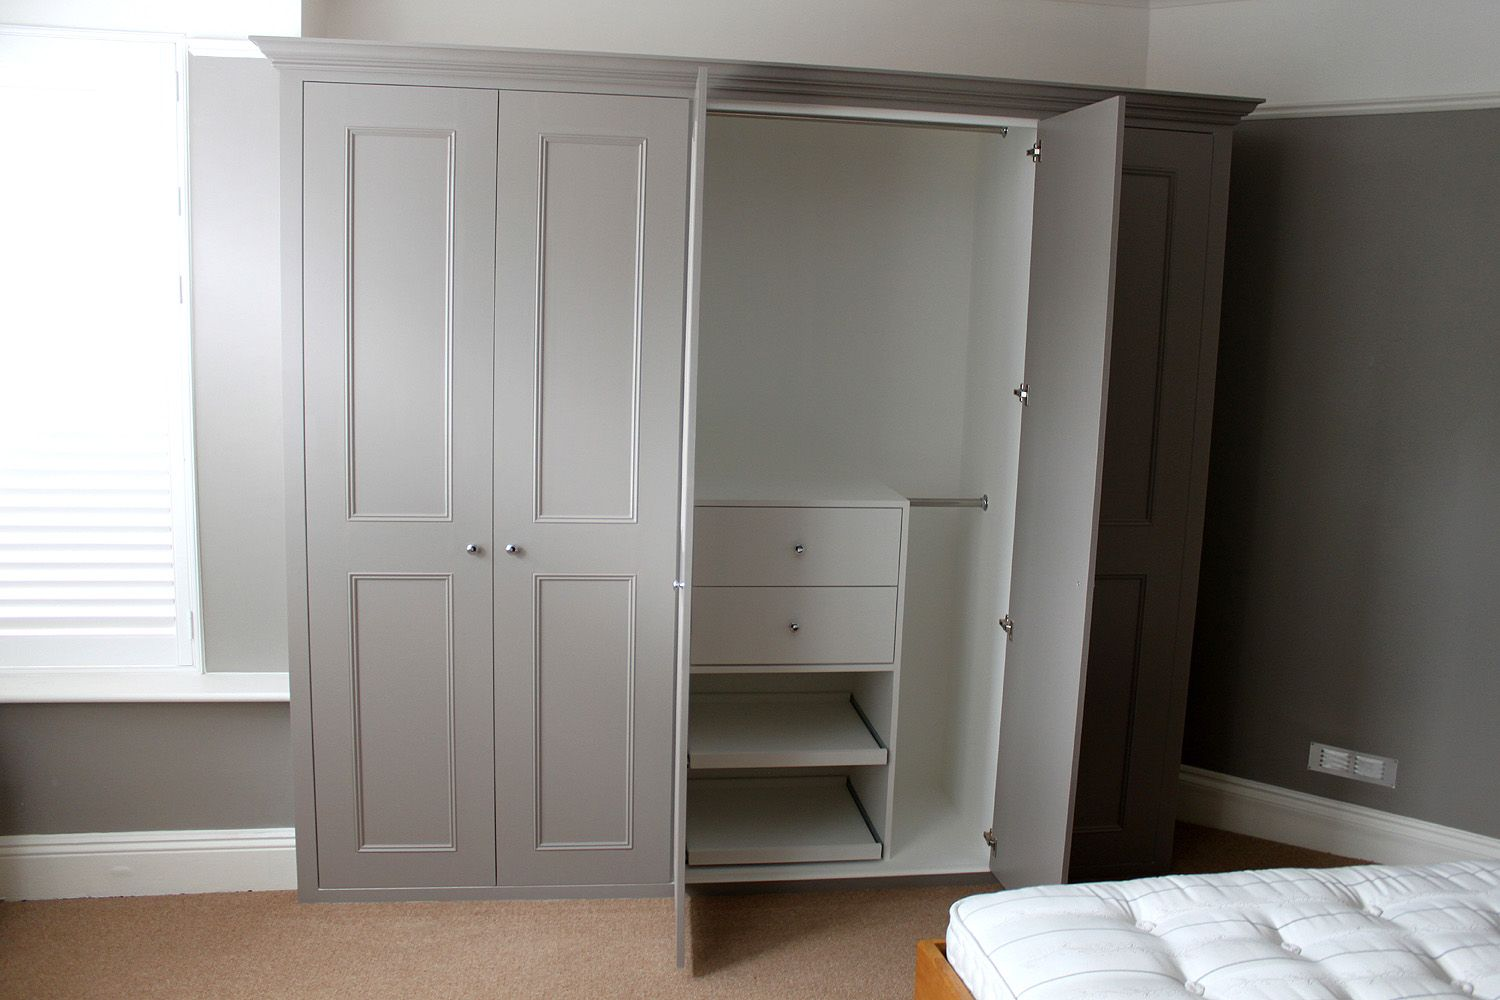 Best Classic Fitted Wardrobe In Hanwell West London Bedroom Pinterest Built In Wardrobe 400 x 300